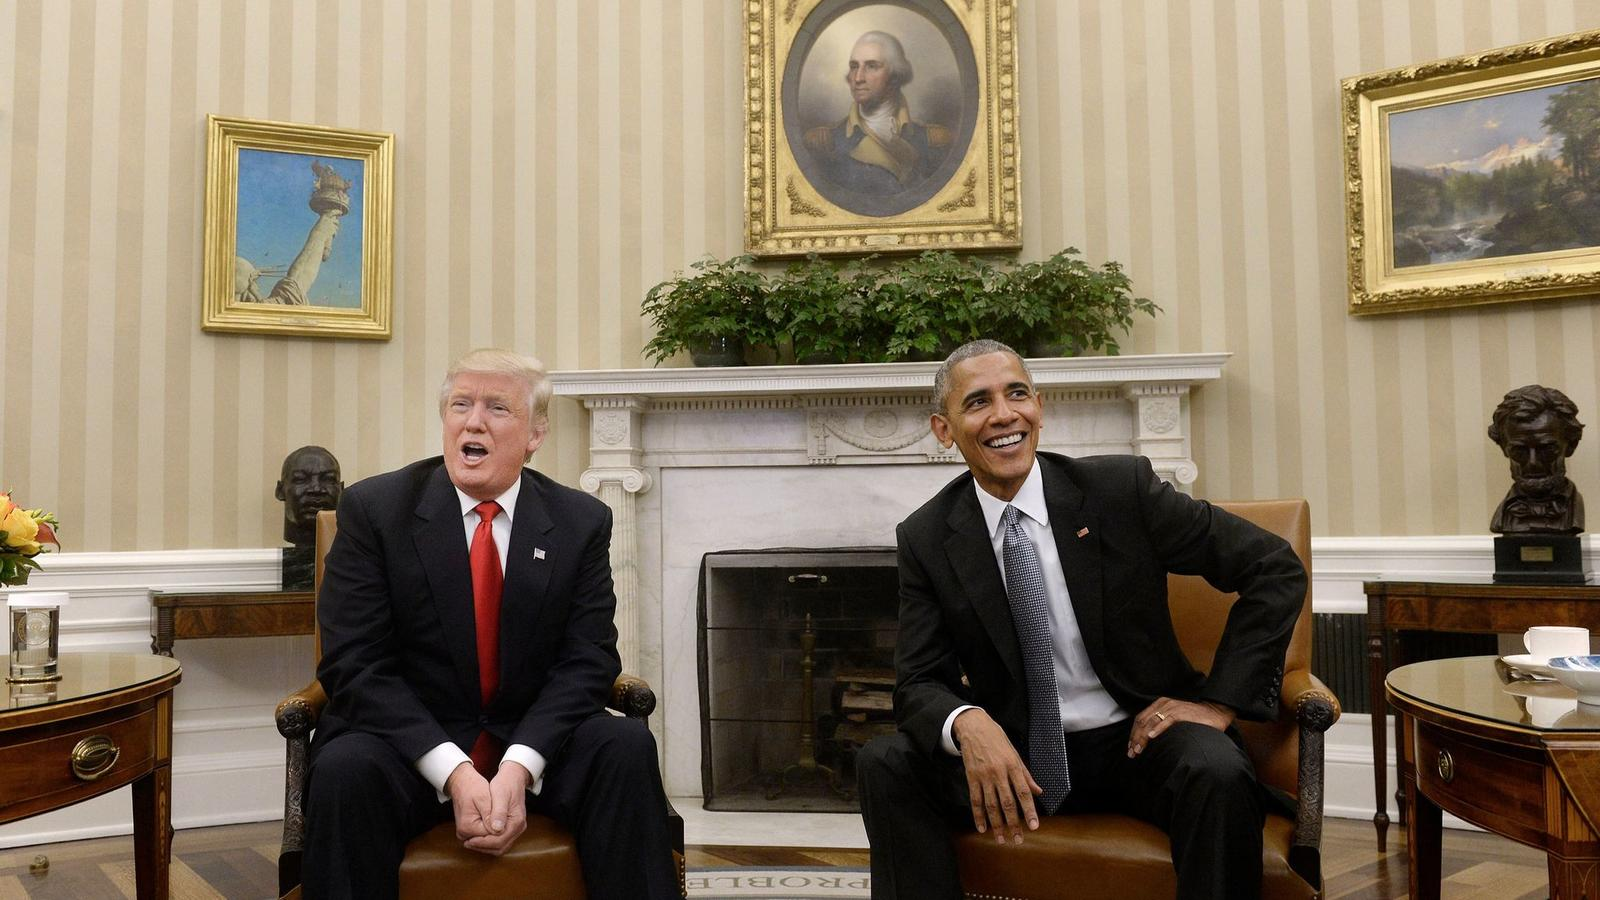 President Obama meets with President-elect Donald Trump.